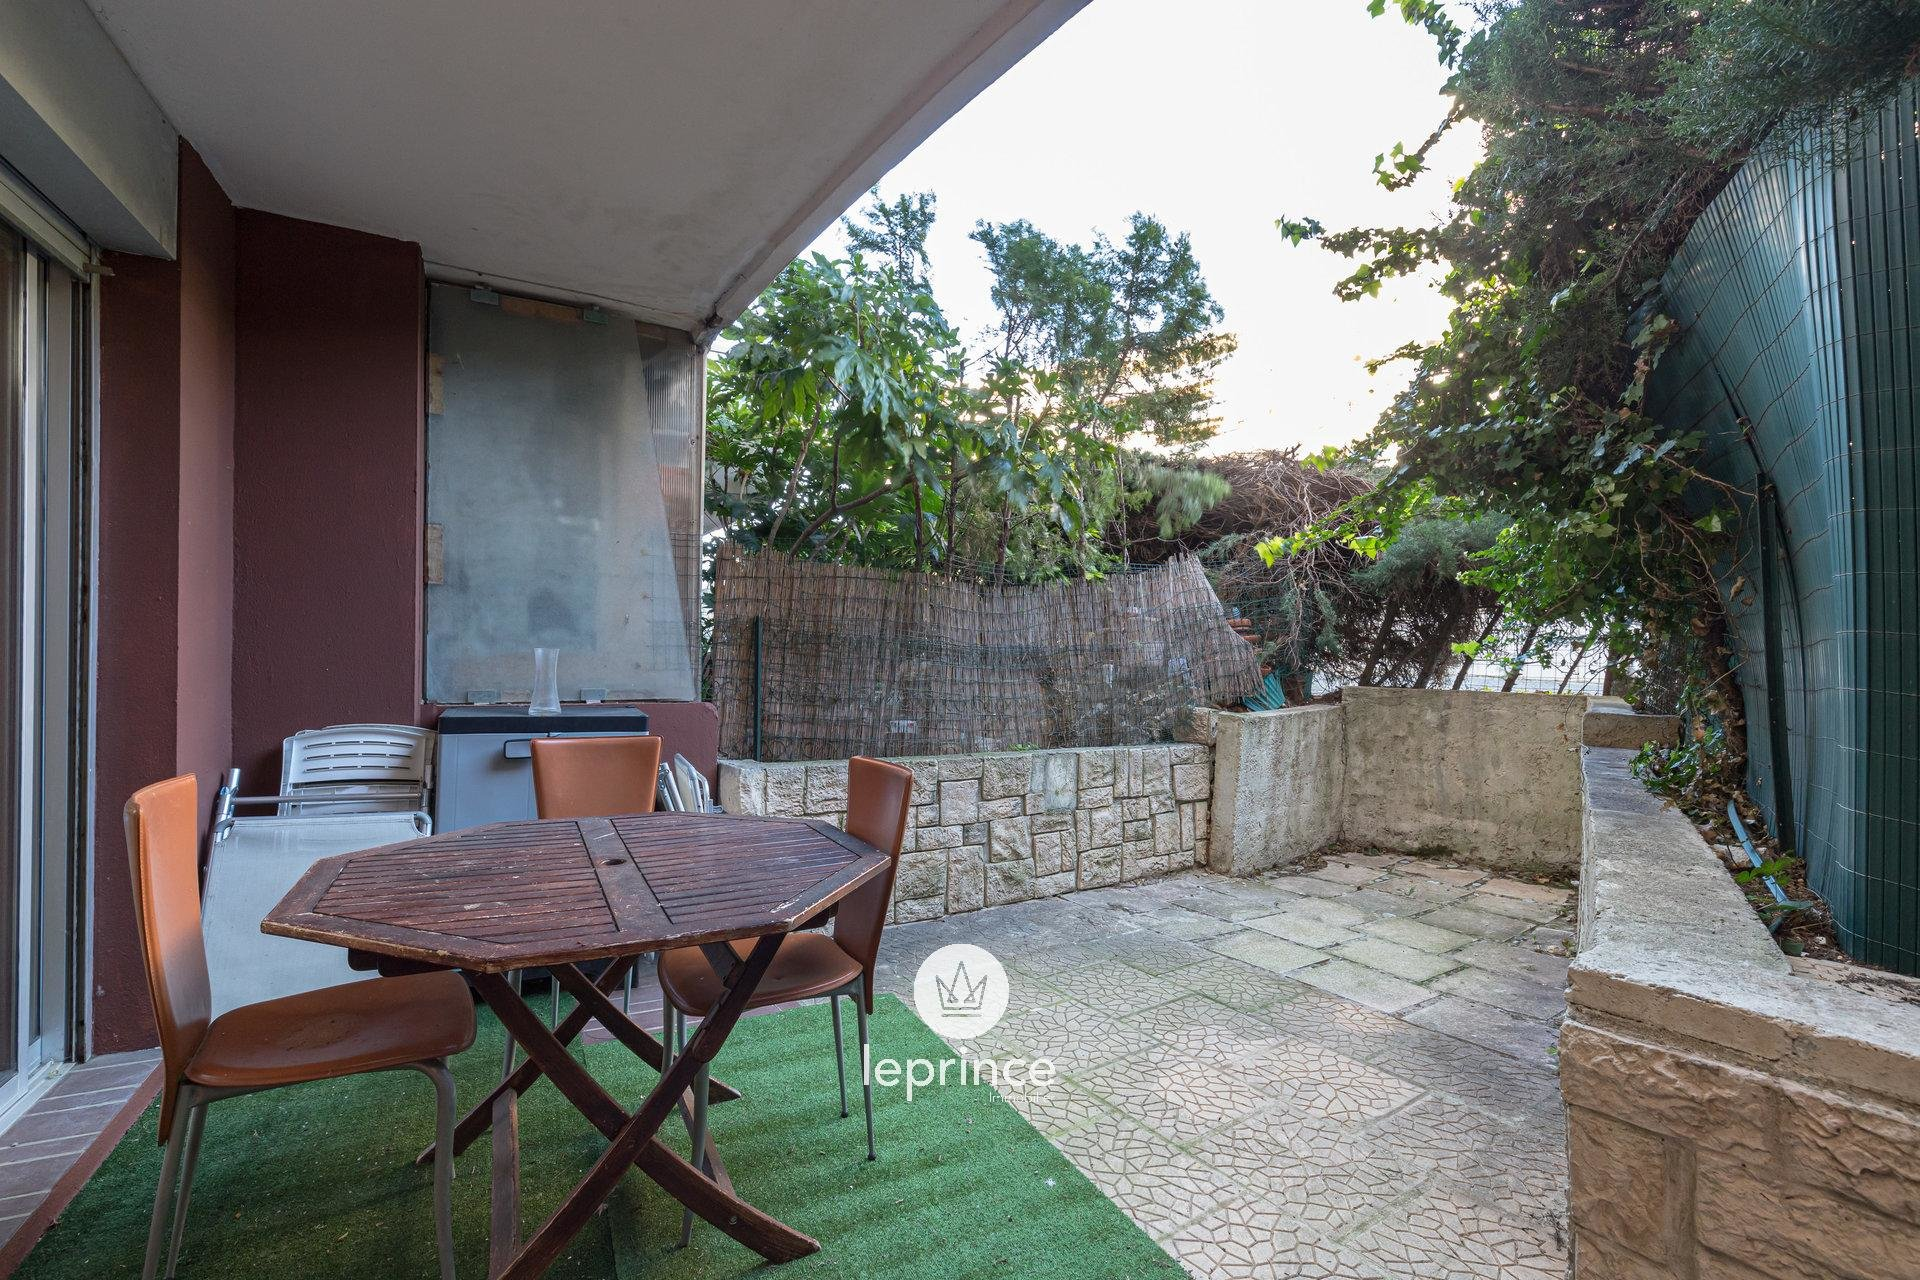 Nice West / Lanterne - 1 Bedroom apartment  Terrace and Garden